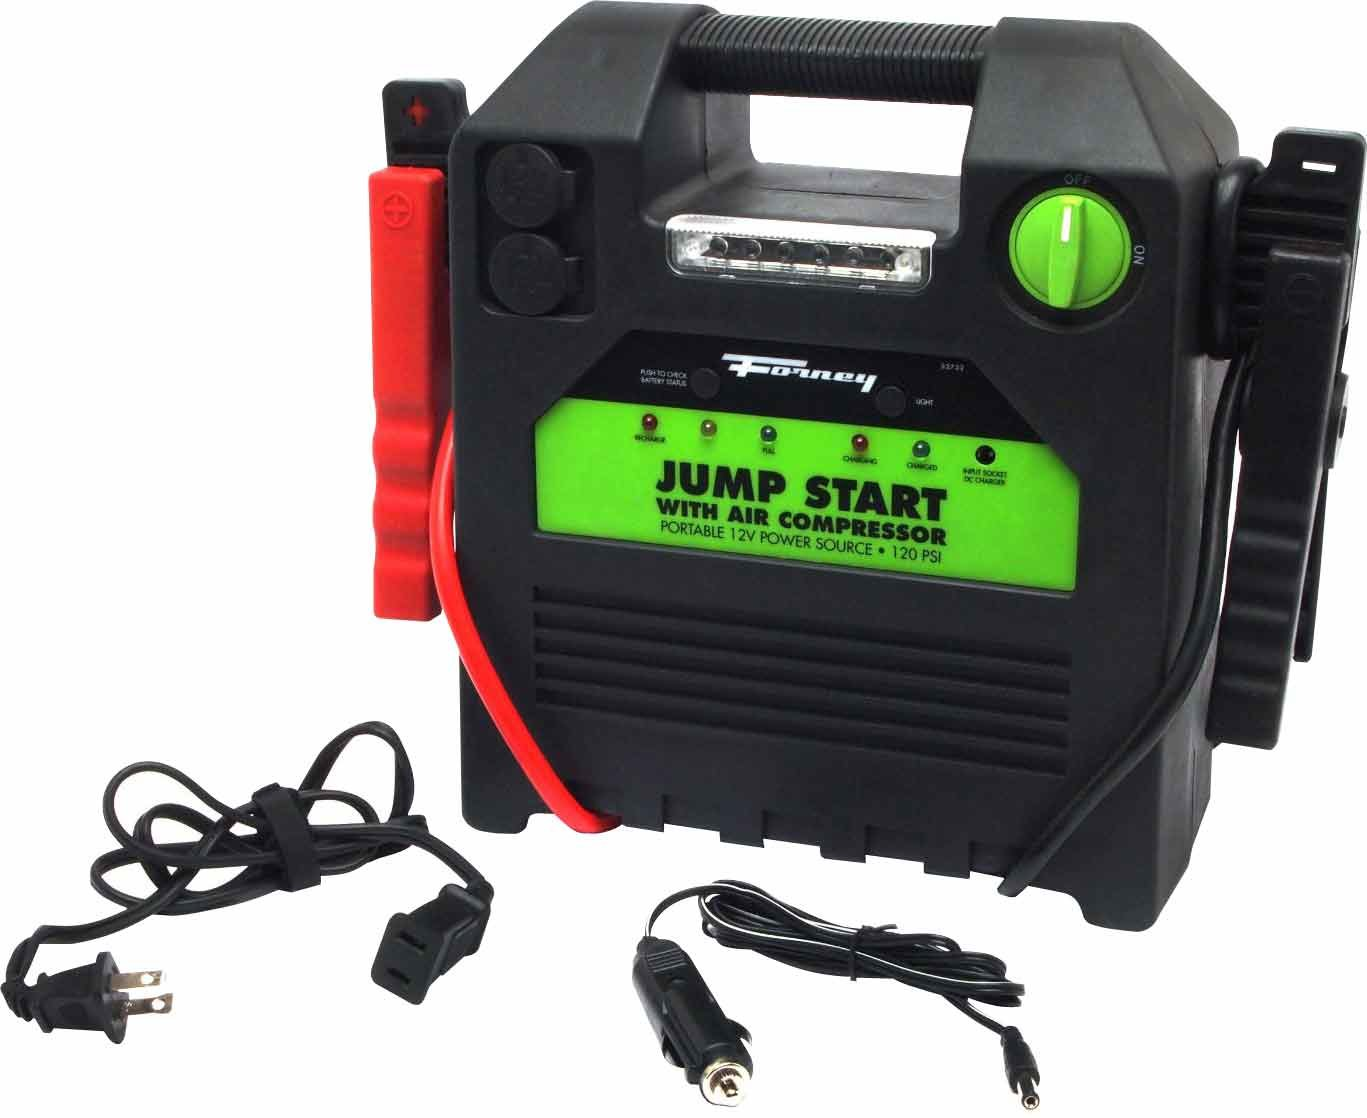 Forney 52732 Battery Booster Pack with 120 PSI Air Compressor, 18-Amp Hour, 12-Volt Jump Start by Forney (Image #1)